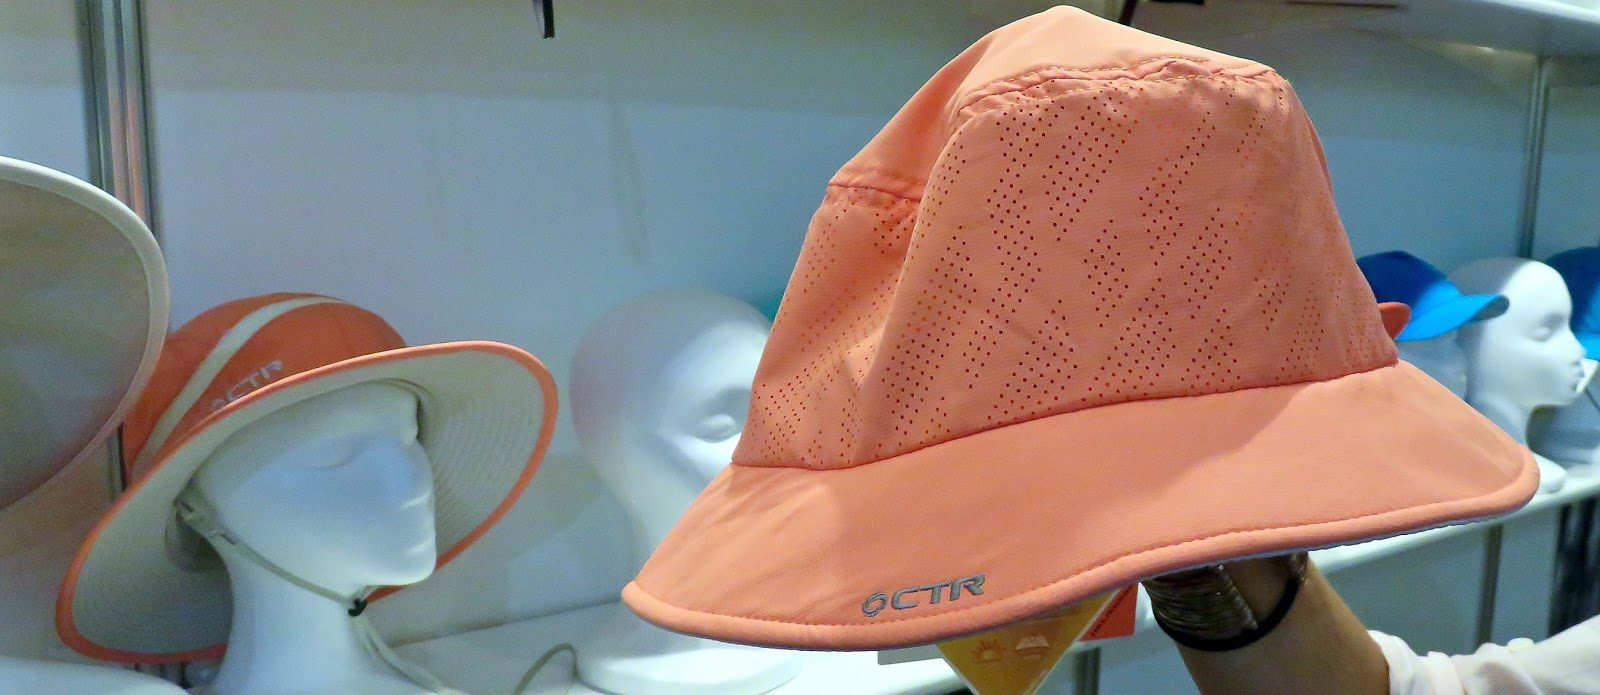 SUMMIT Ladies airy bucket hat UPF 40+ packable with flop-able brim 51c1b21cc2d8